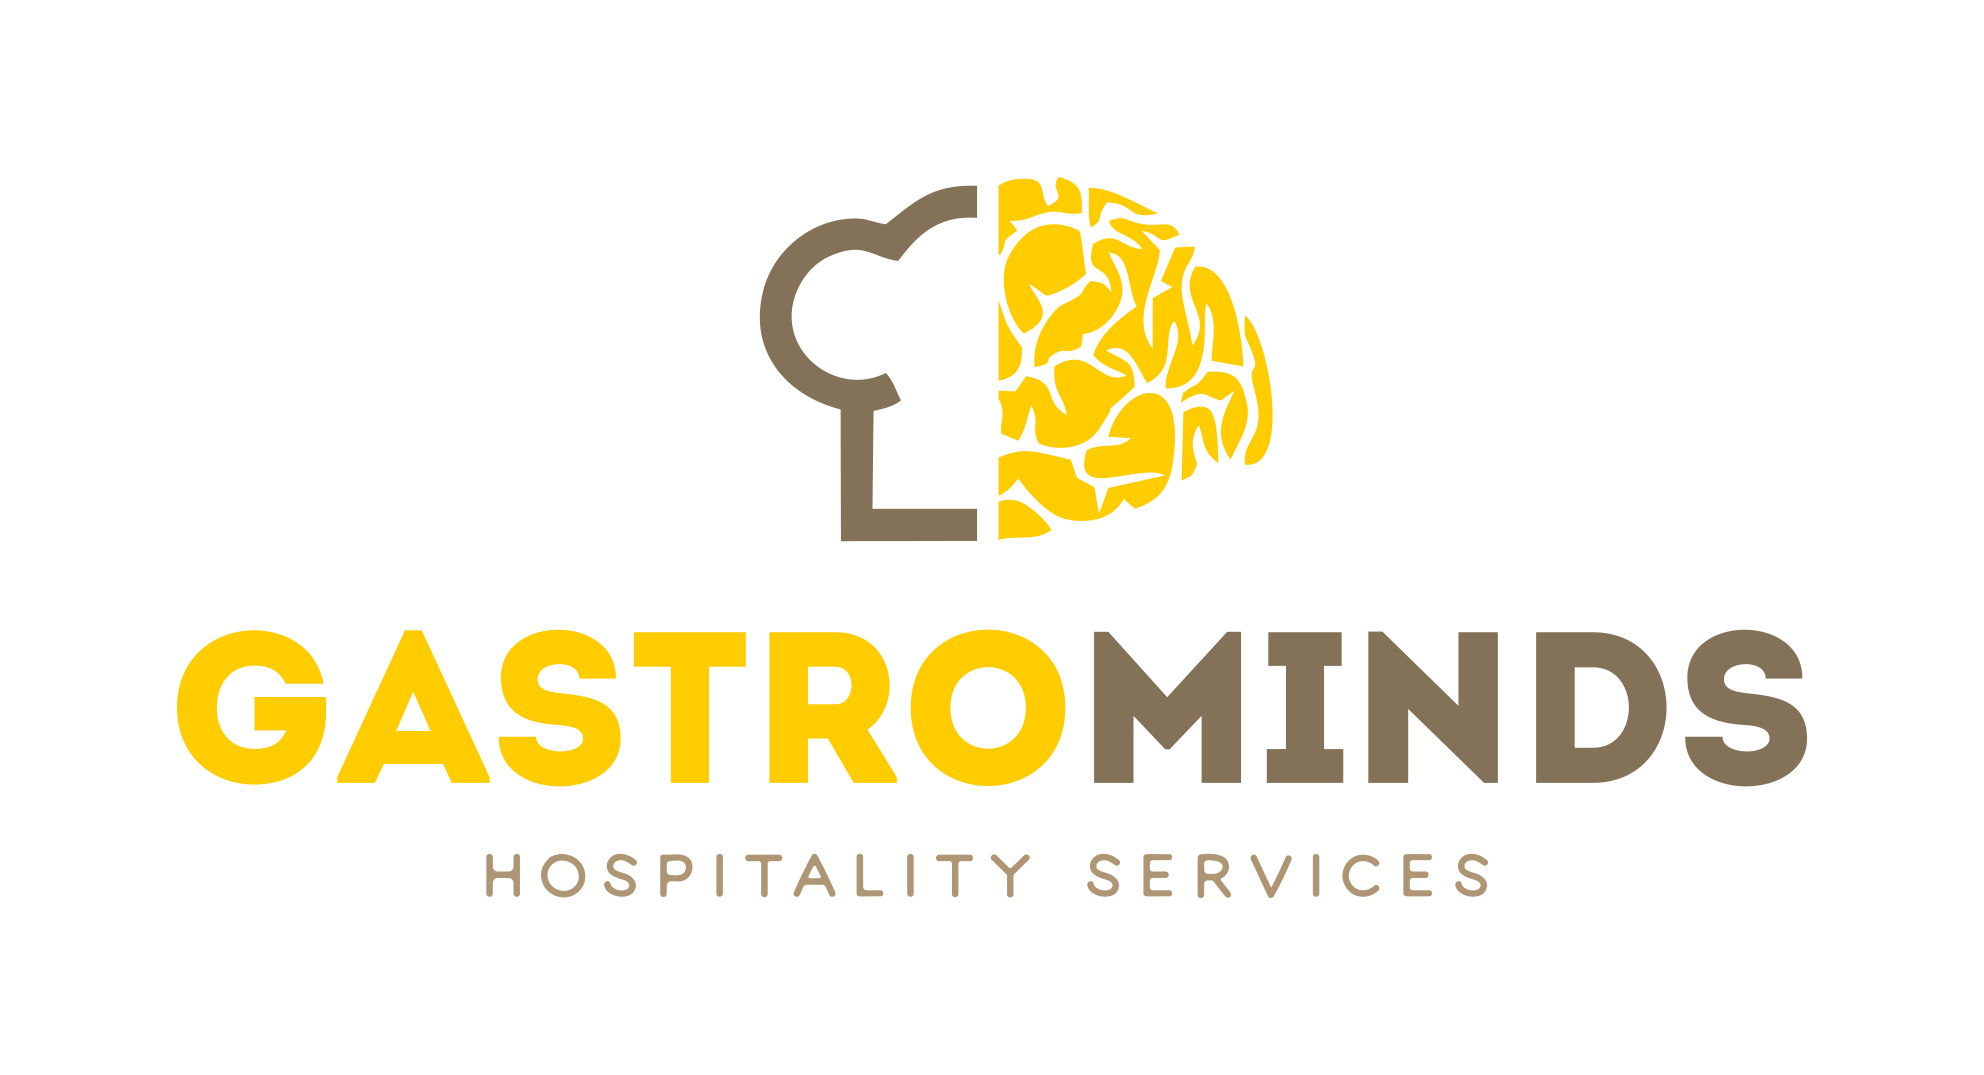 Welcome to GastroMinds